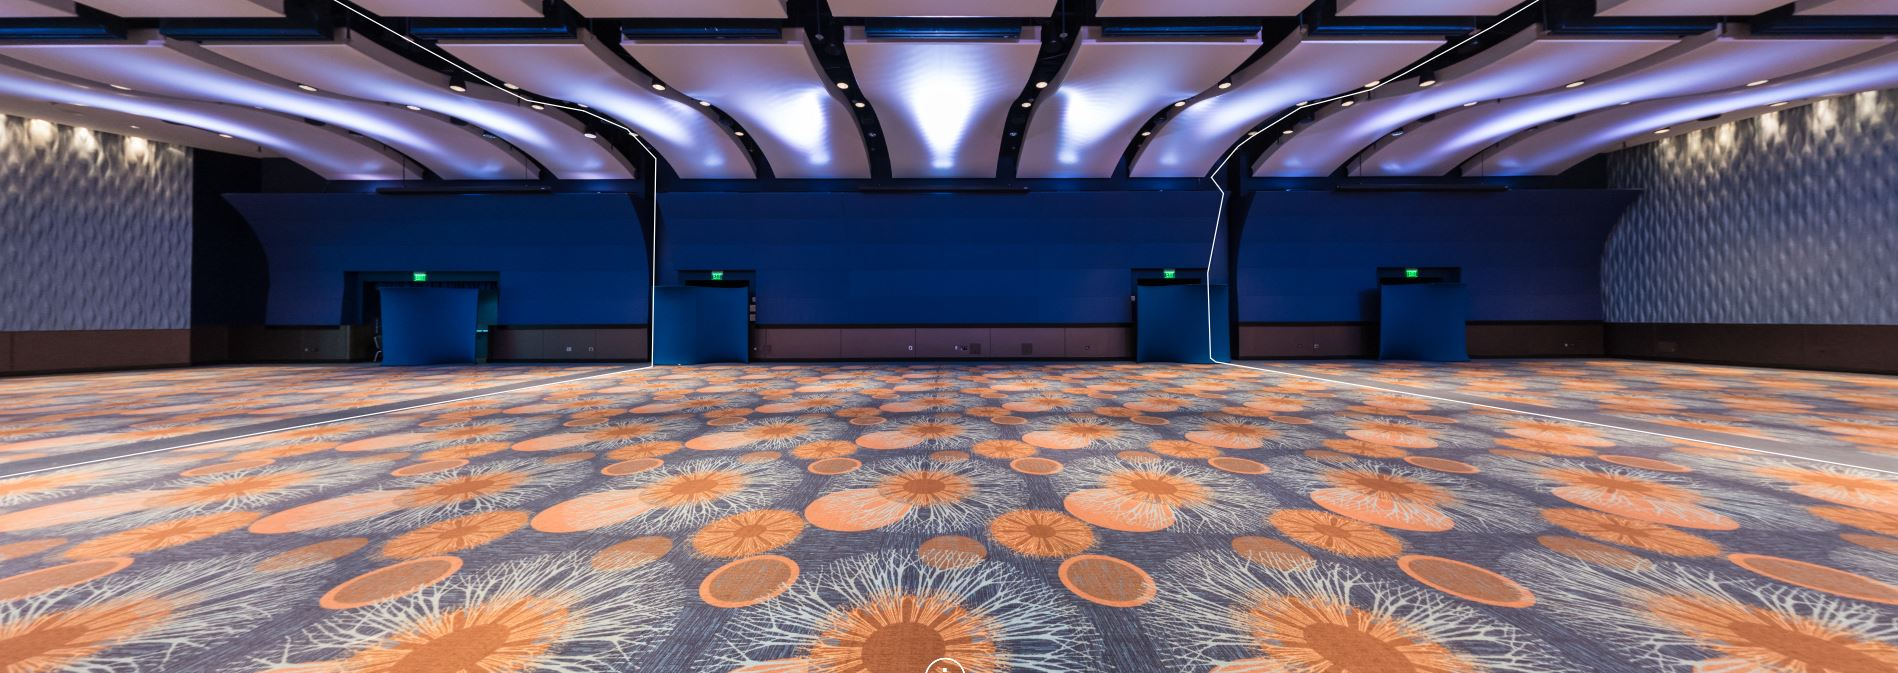 GA Aquarium Oceans Ballroom Before